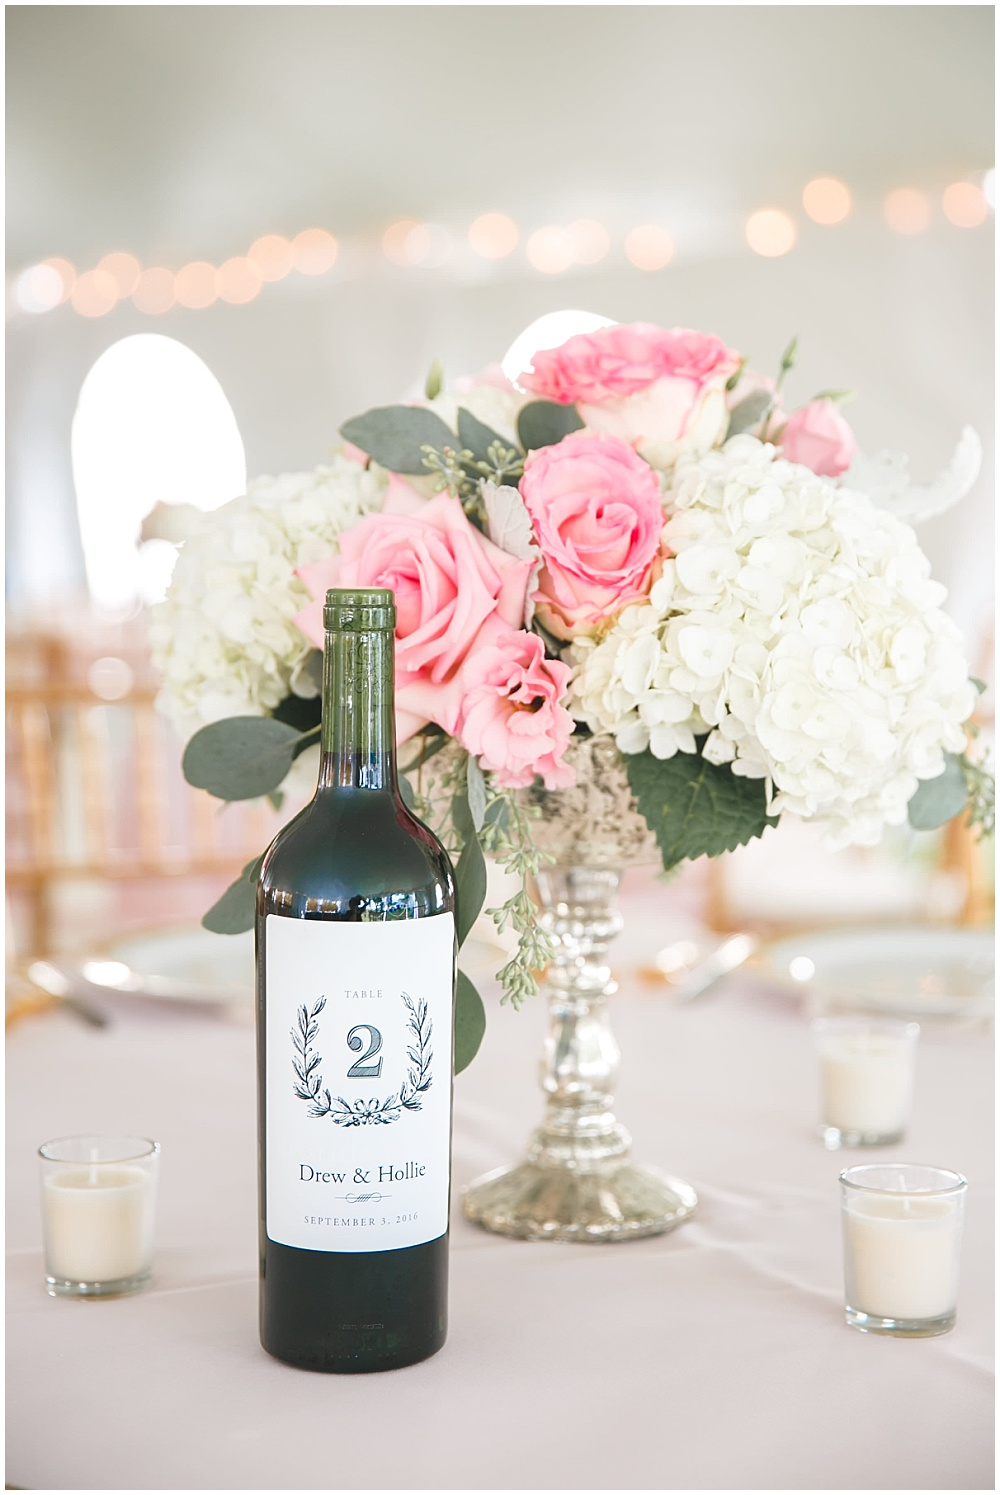 Wine bottle table numbers | Family Farm wedding by SB Childs Photography & Jessica Dum Wedding Coordination